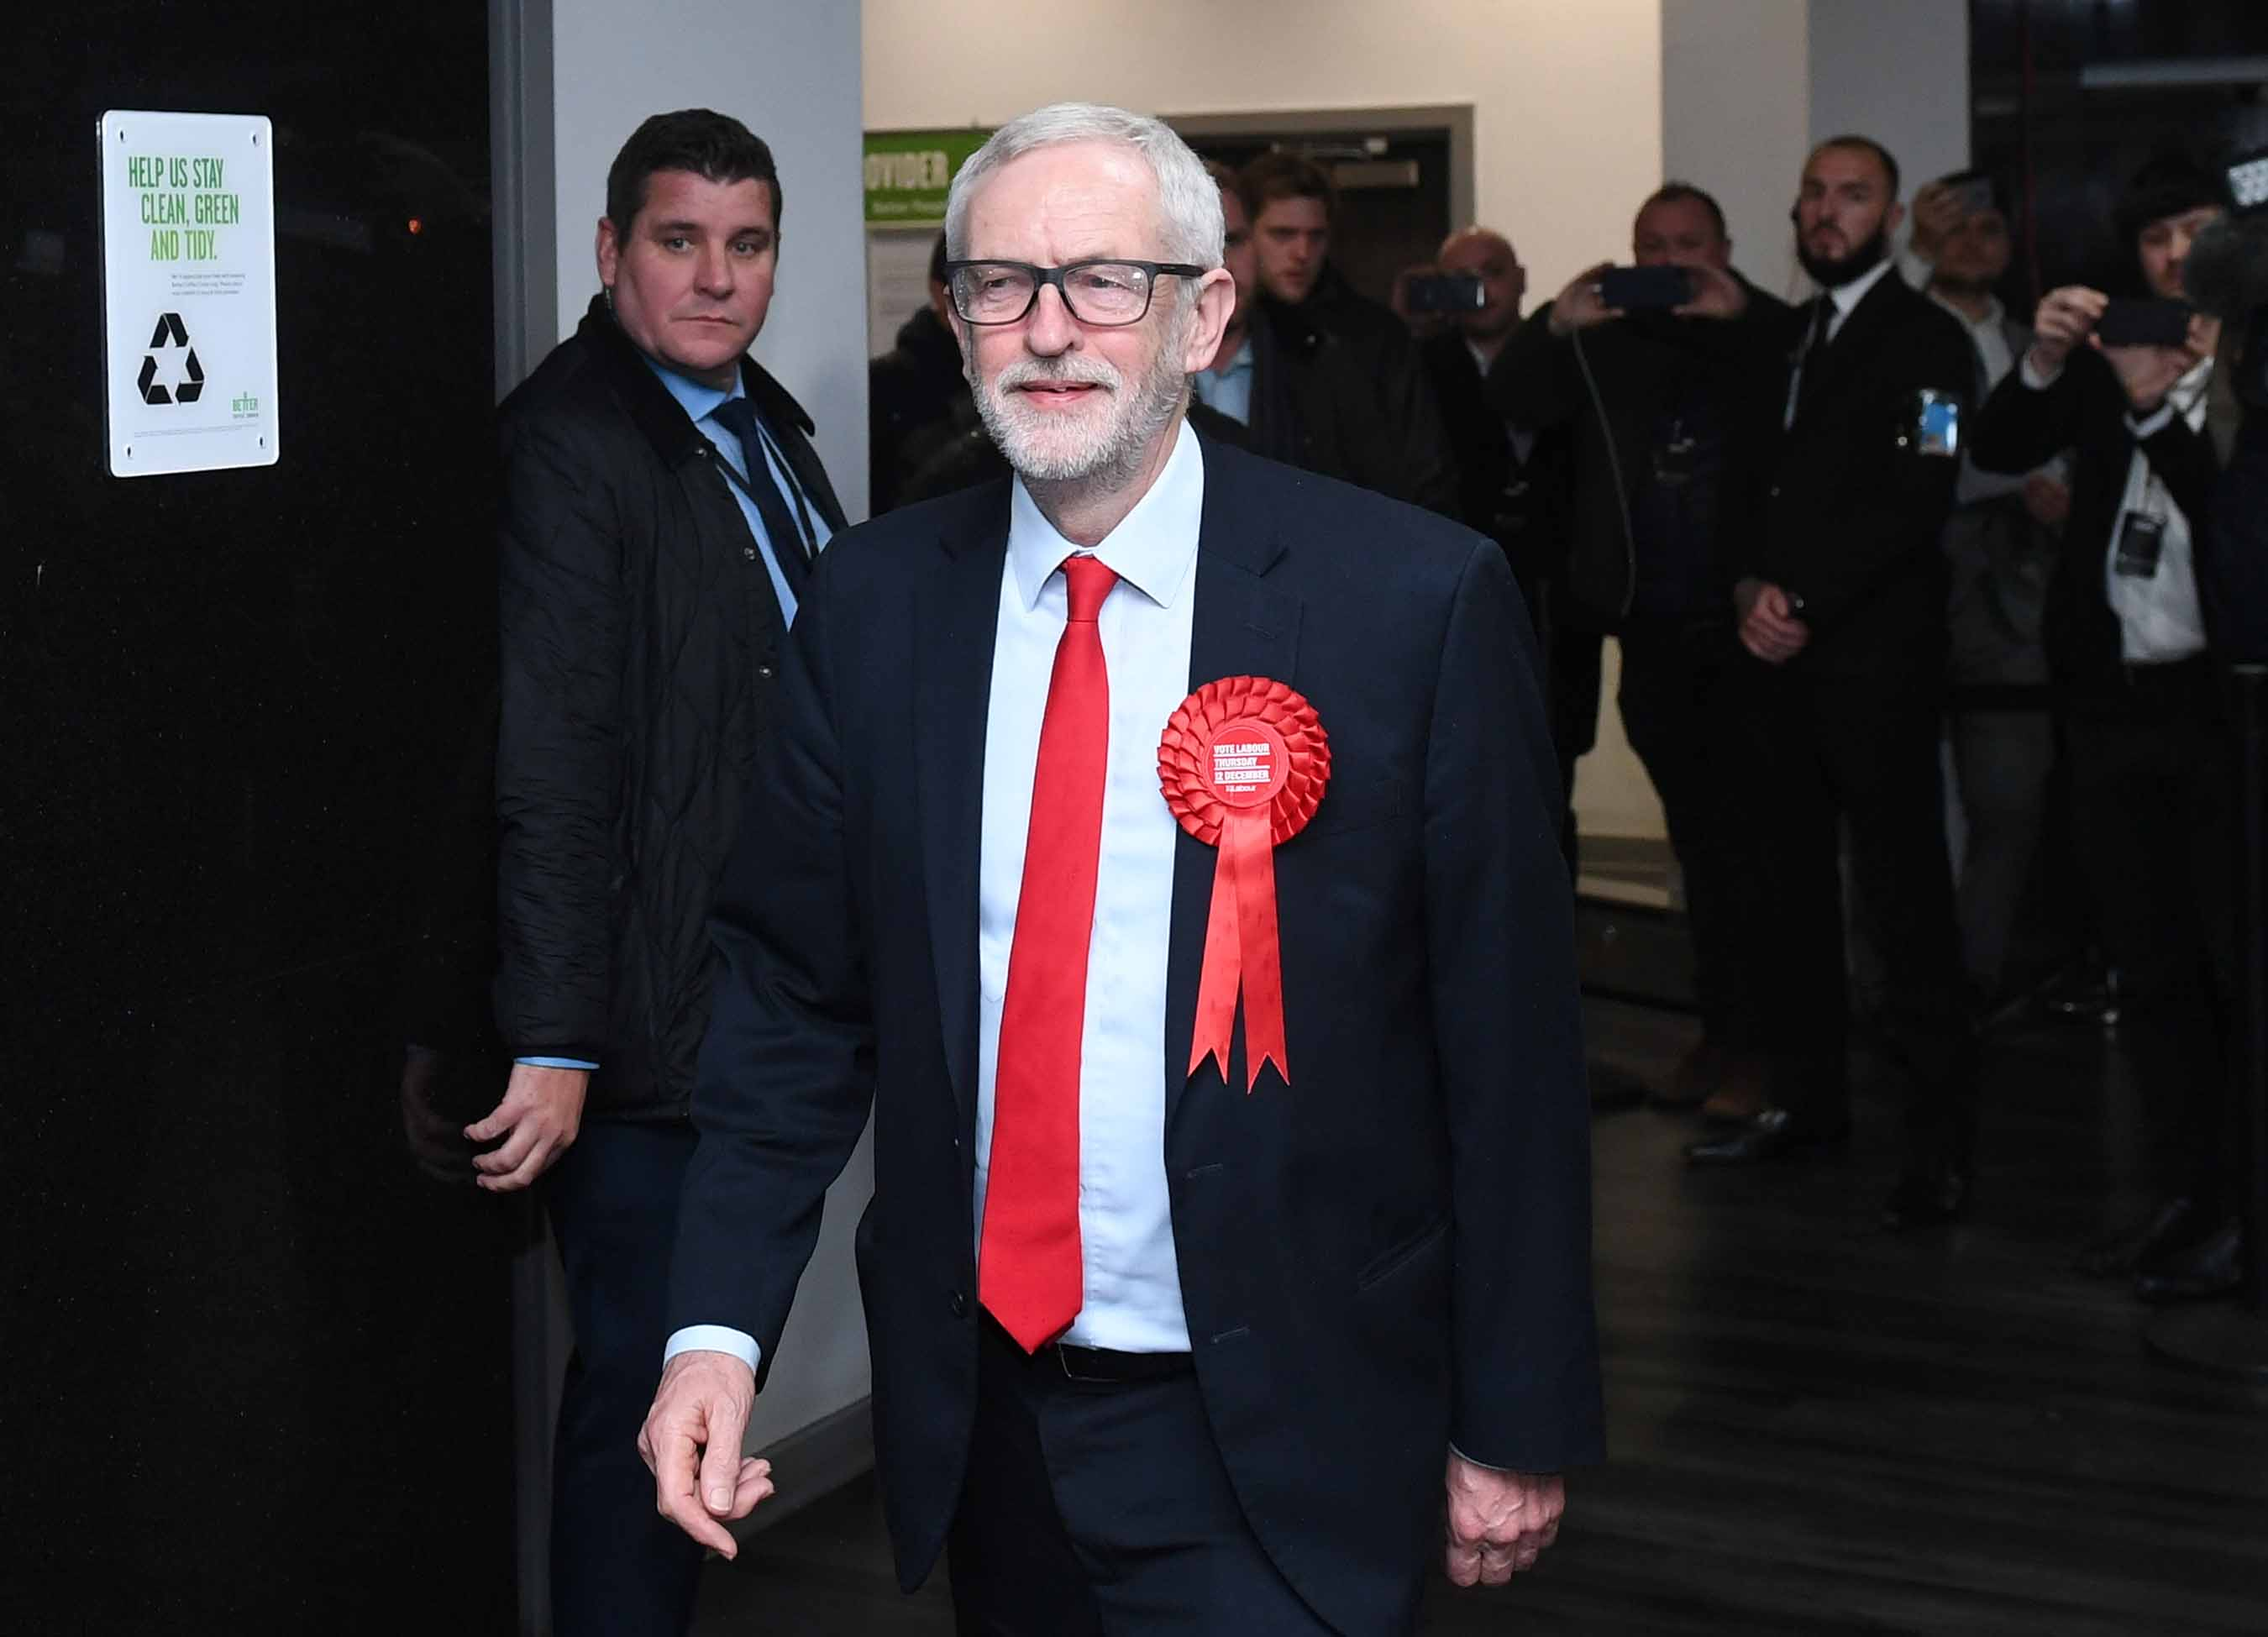 Labour leader Jeremy Corbyn arrives for the vote count at Sobell Leisure Centre in Islington North and South constituencies. Photo: Joe Giddens/PA Images via Getty Images